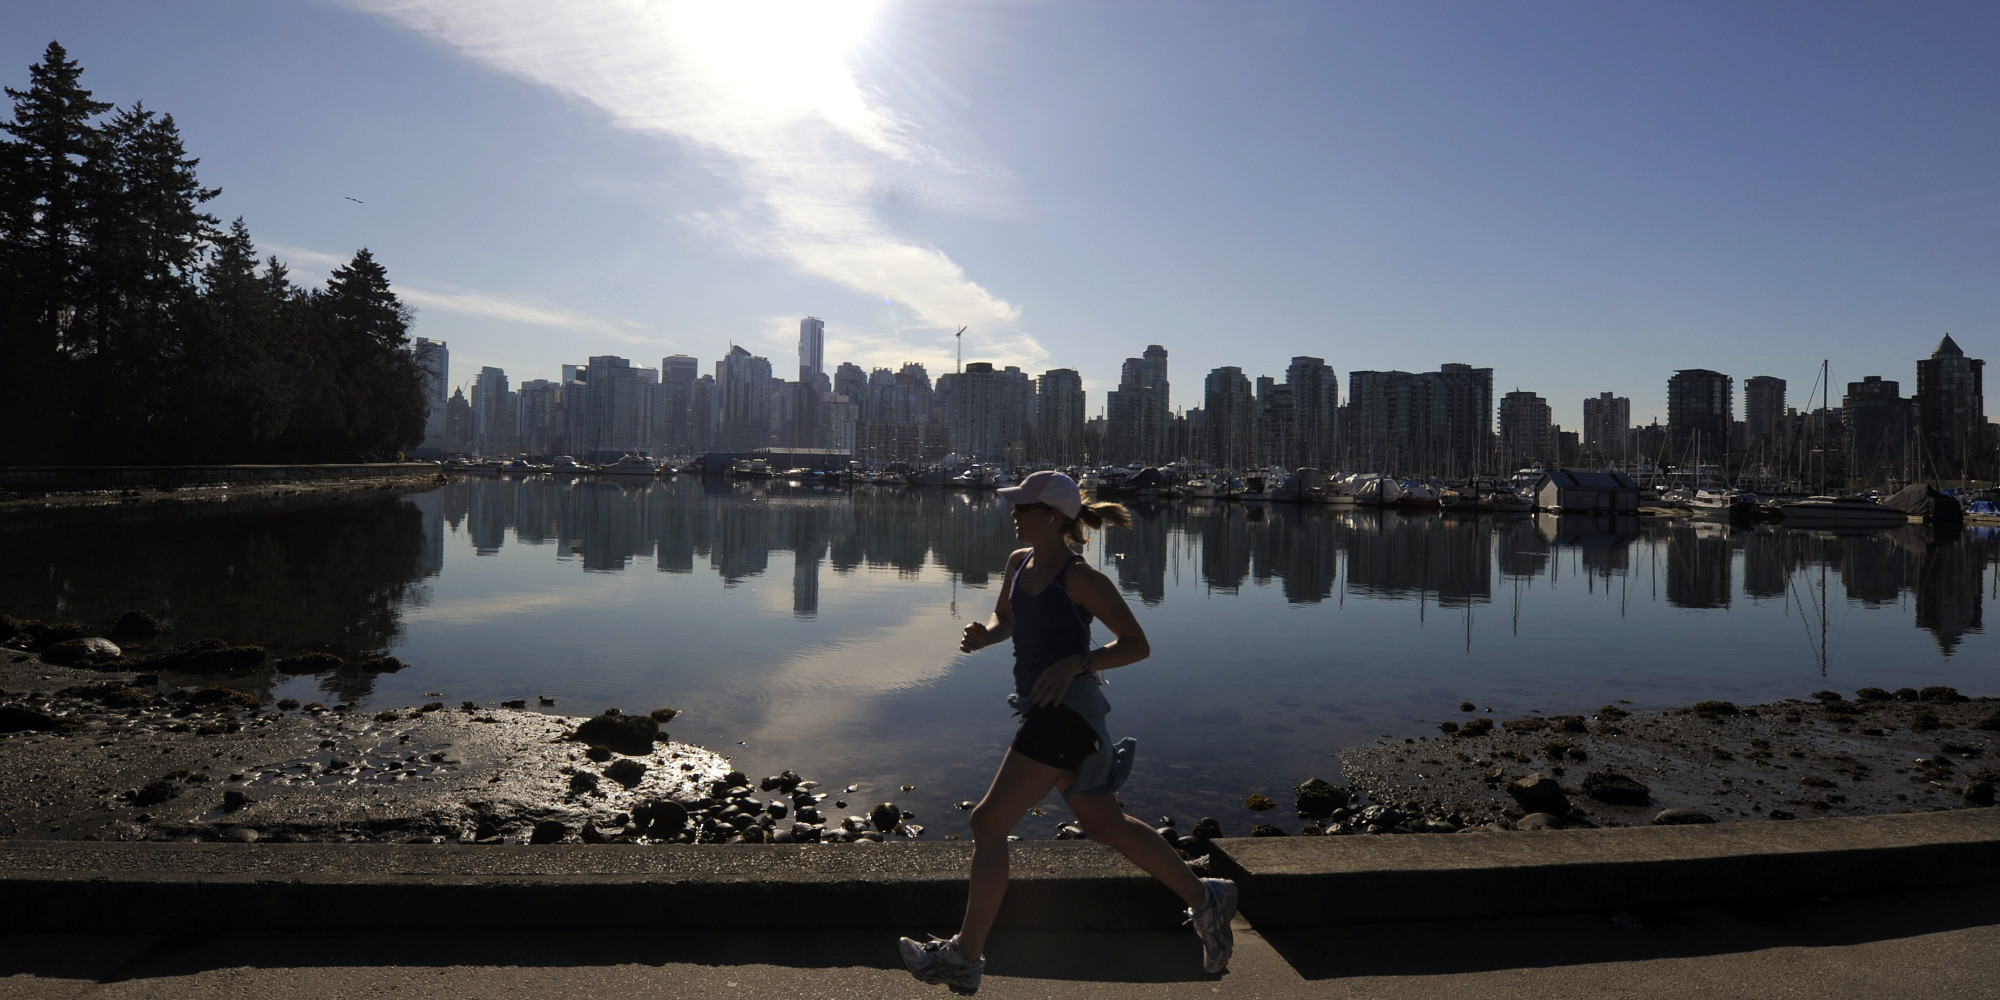 Vancouver Most Expensive City To Live In North America The Economist